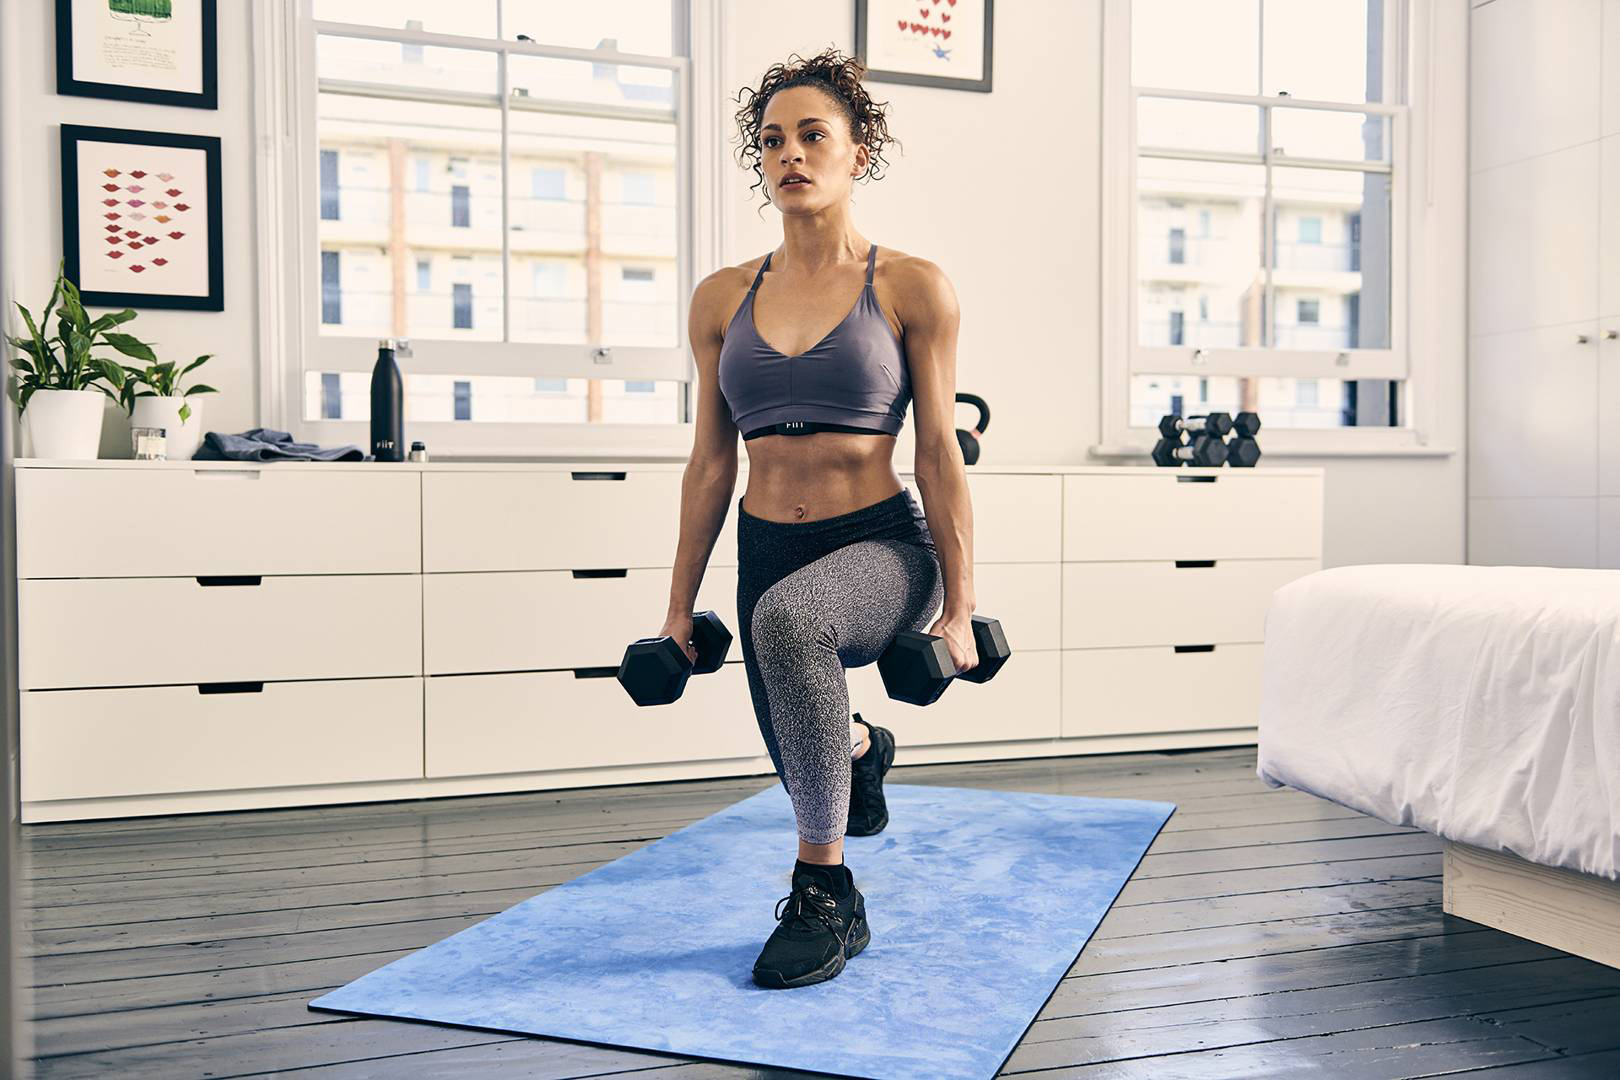 User with Weights